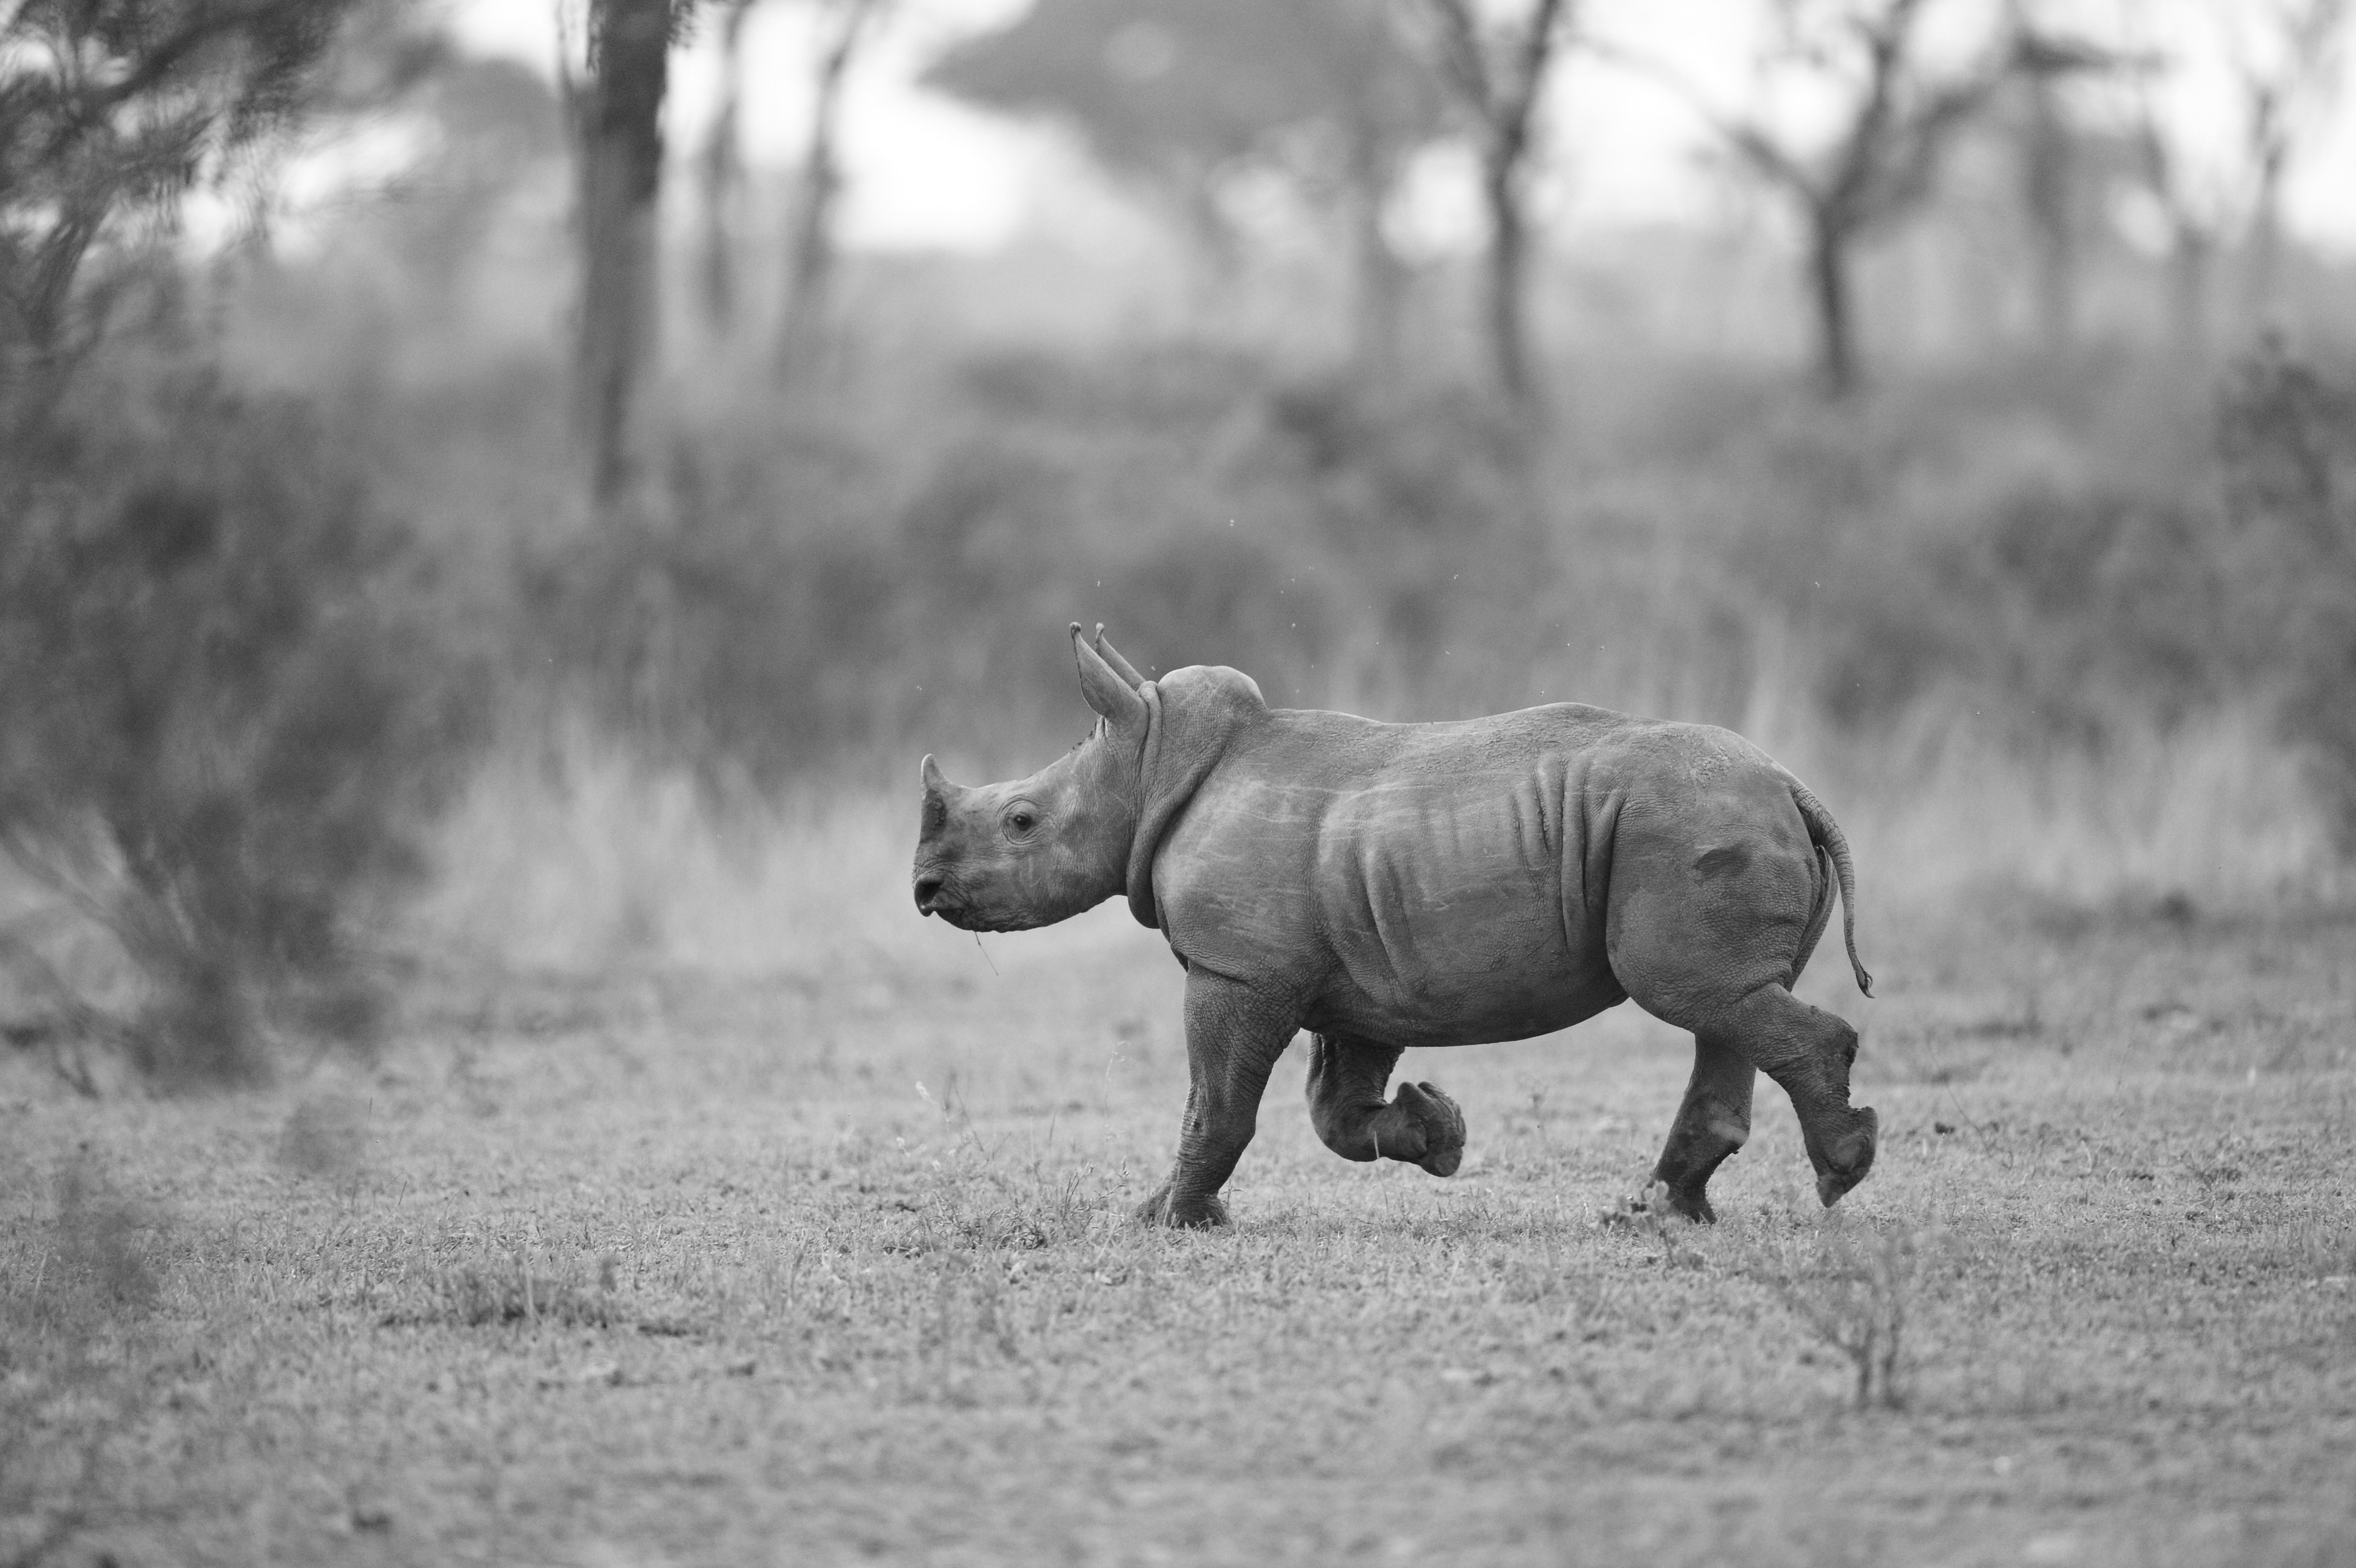 Rhinocerus with Baby, Londolozi ©Johannes Ratermann